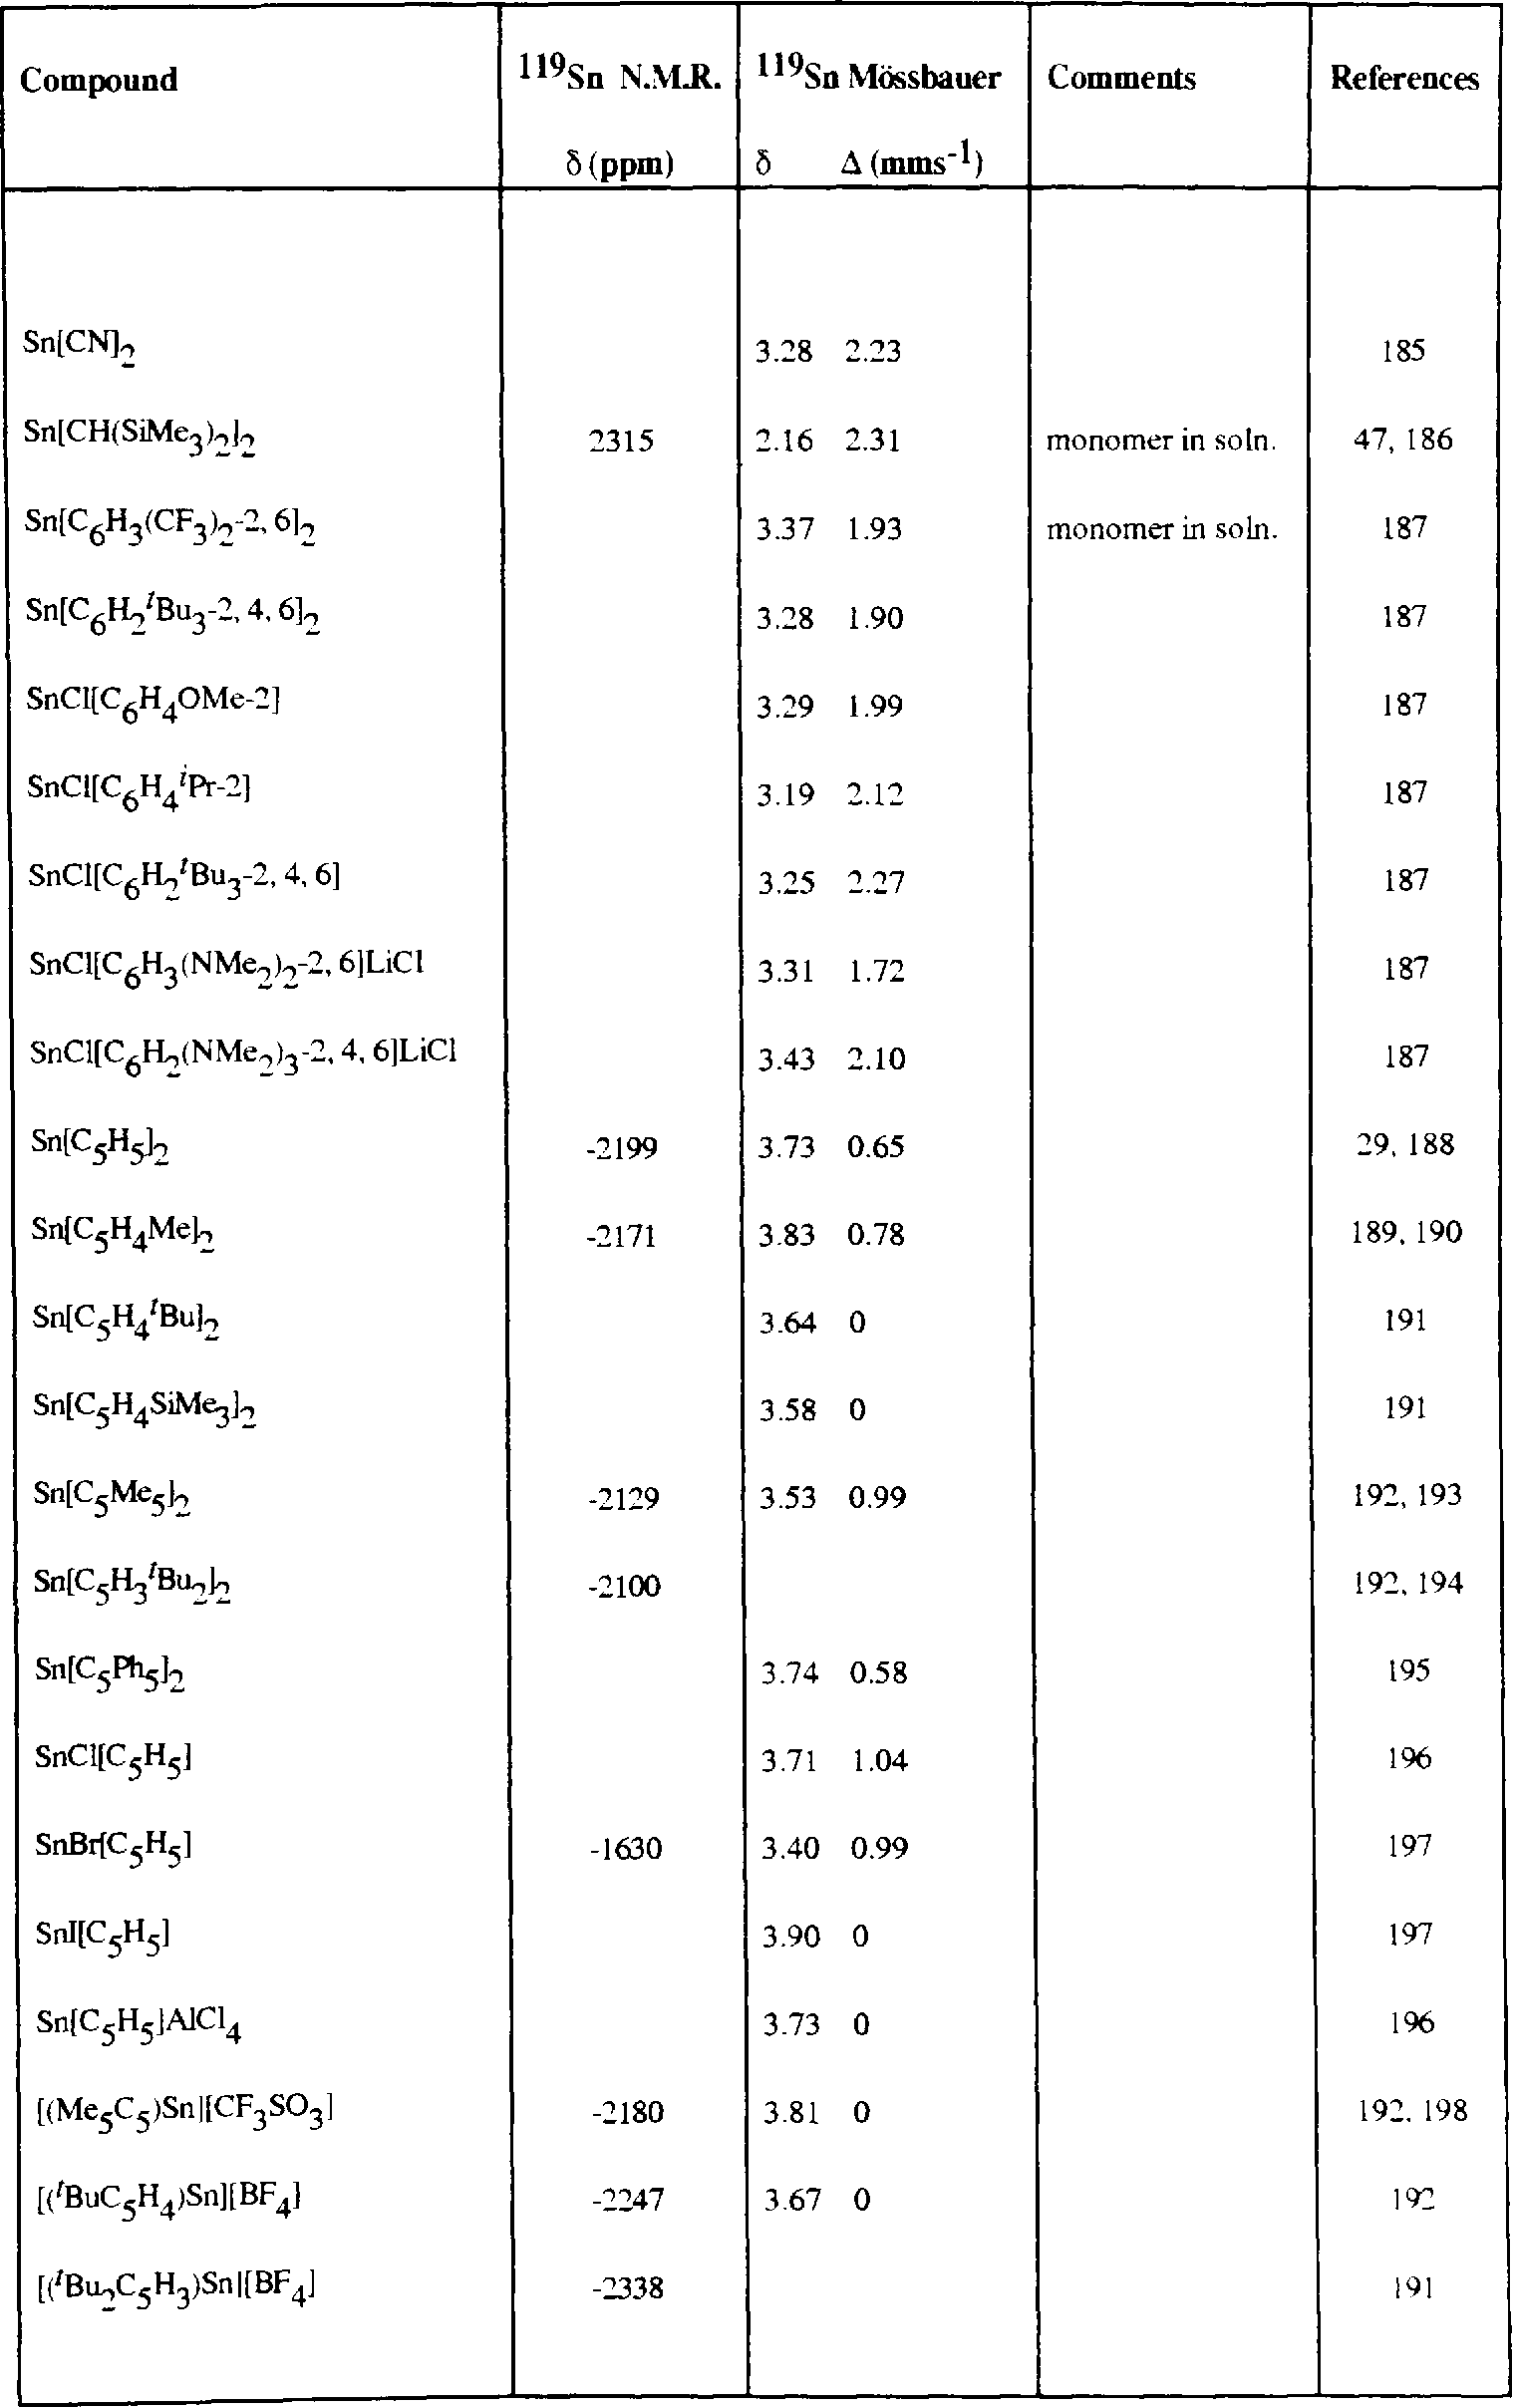 table 1.12